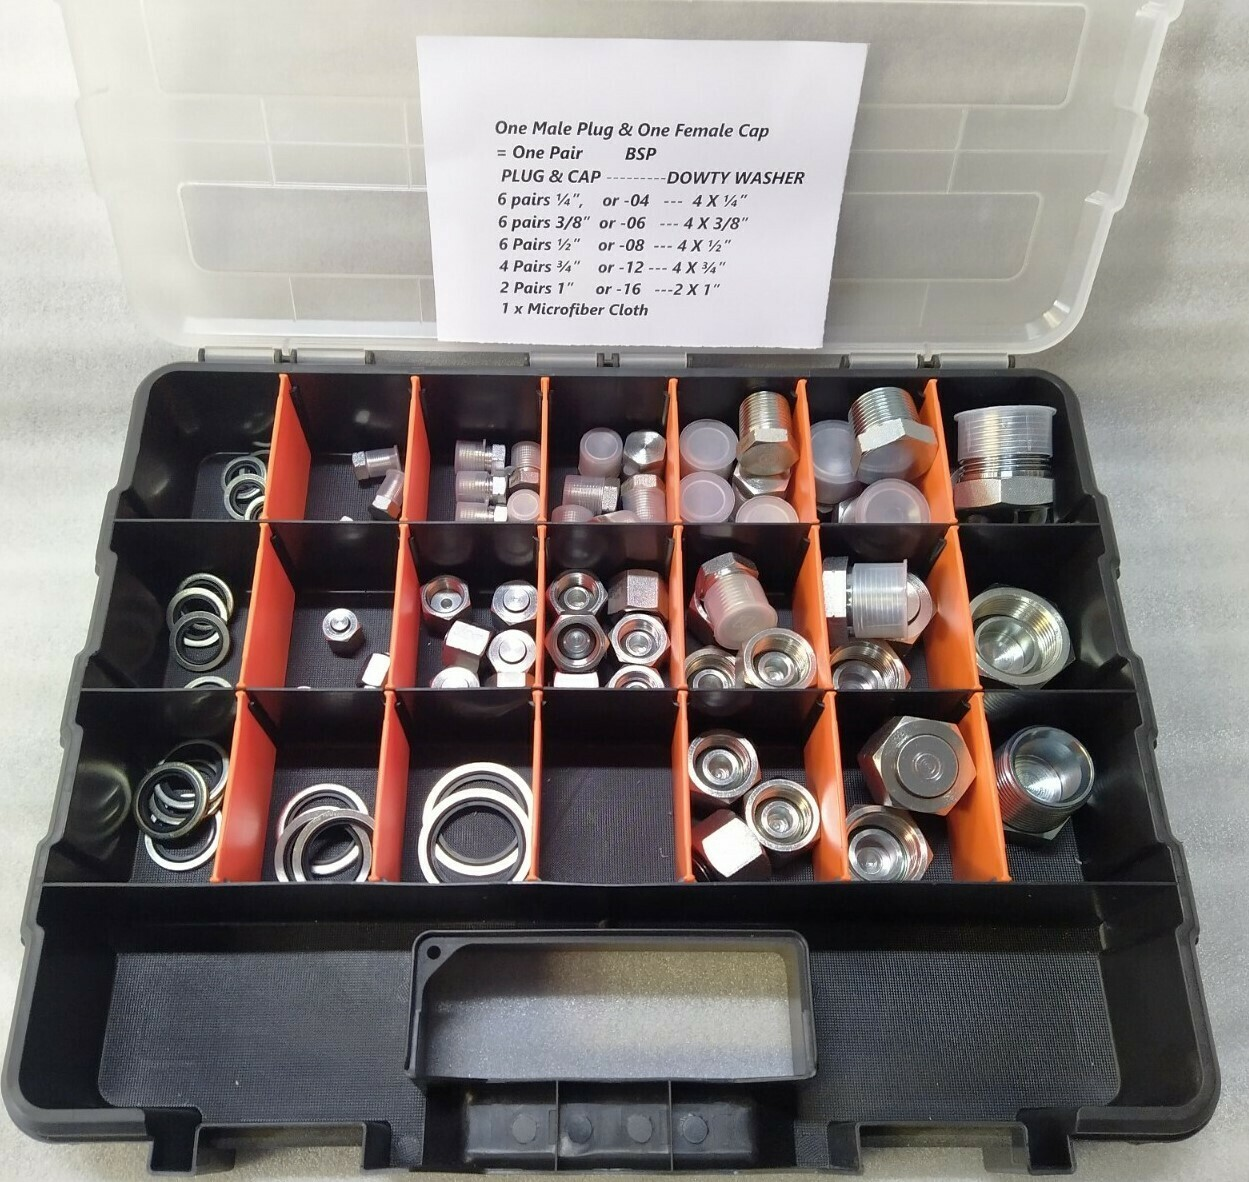 BSP  Plug & Cap Kit    52 Pc  Strong Case +DOWTY WASHER